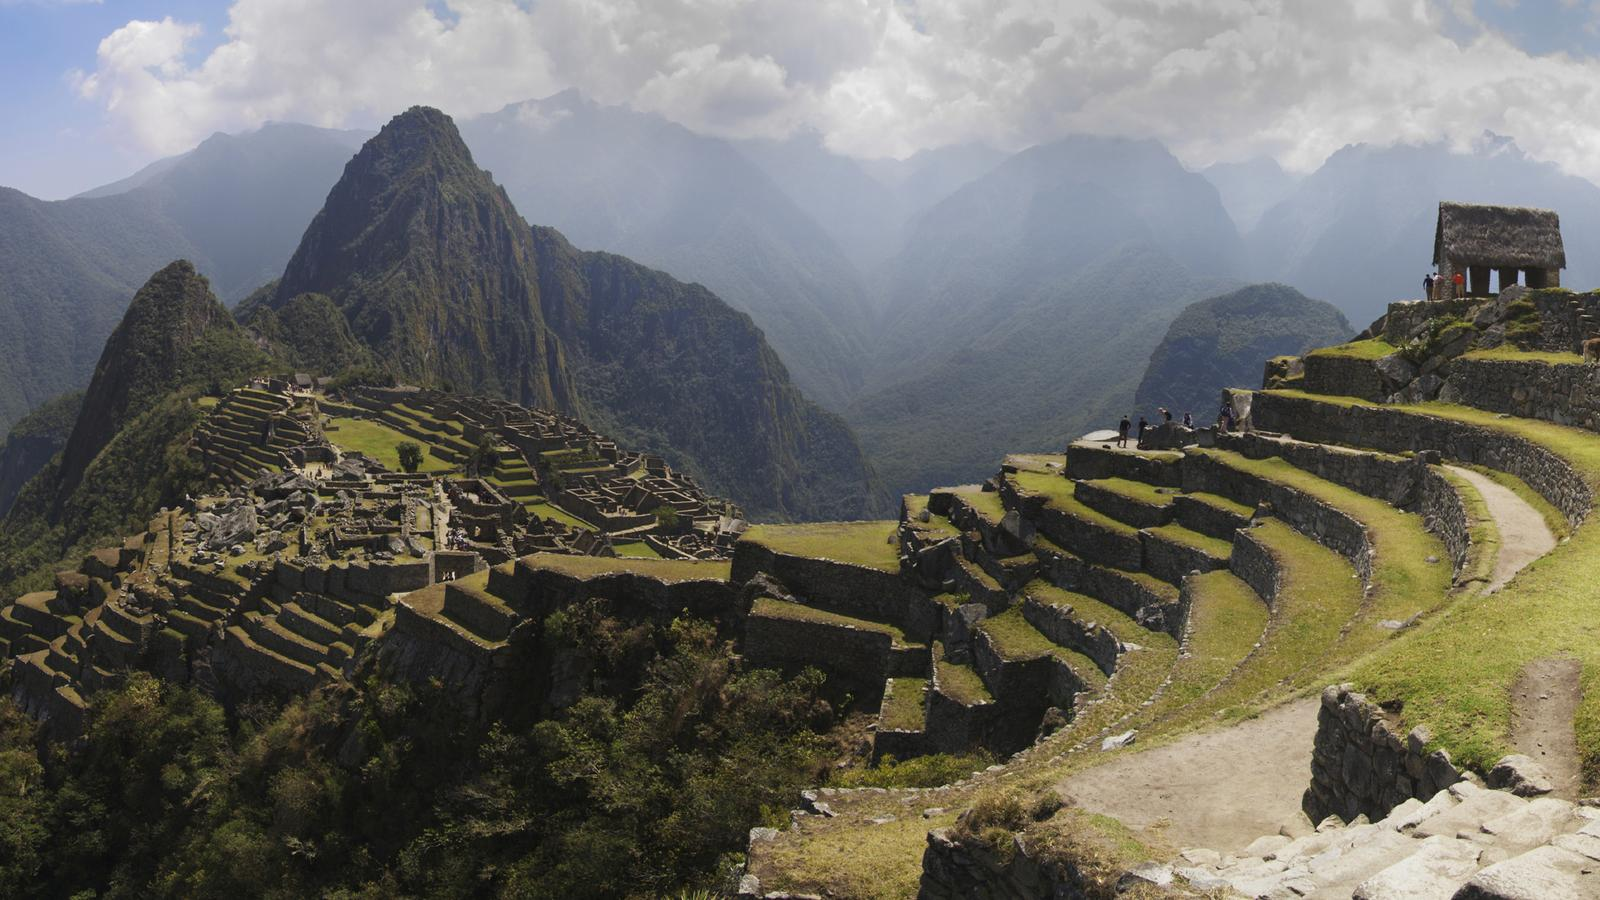 A wide photograph of the spectacular Machu Picchu